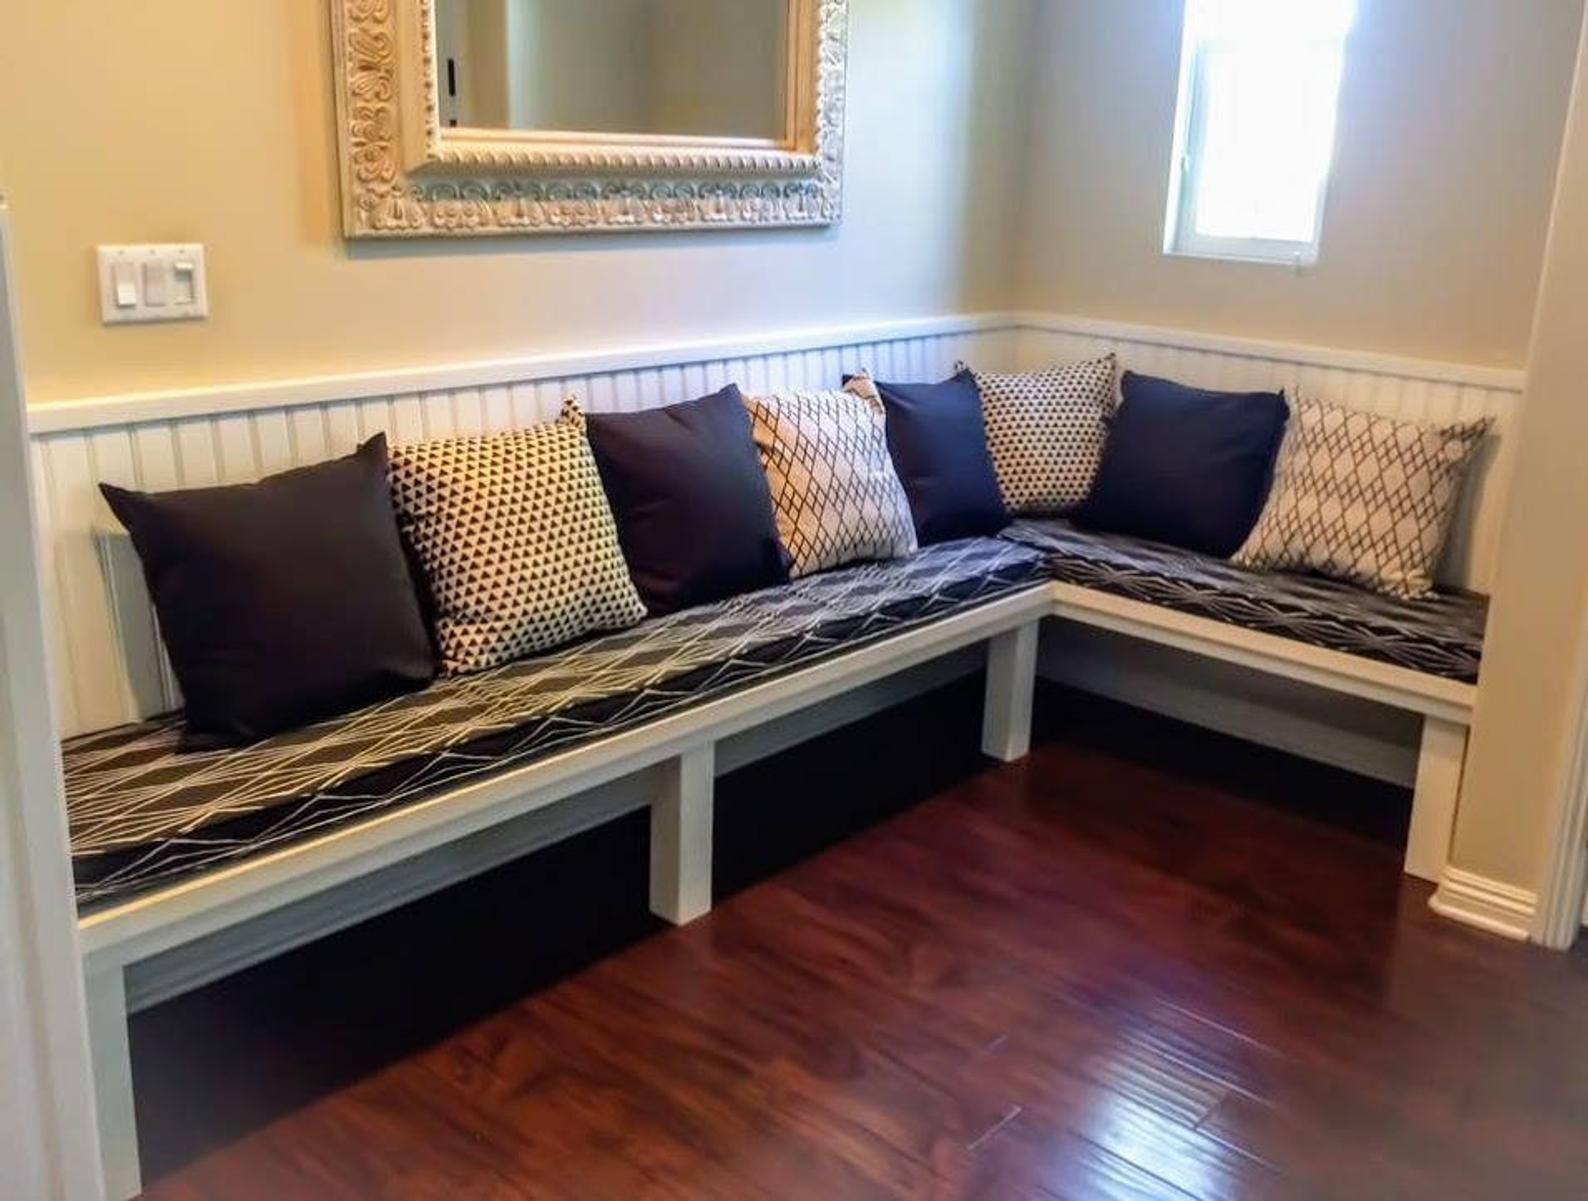 Bench Seat Nook Window Cushions Custom Made Example Etsy Nook